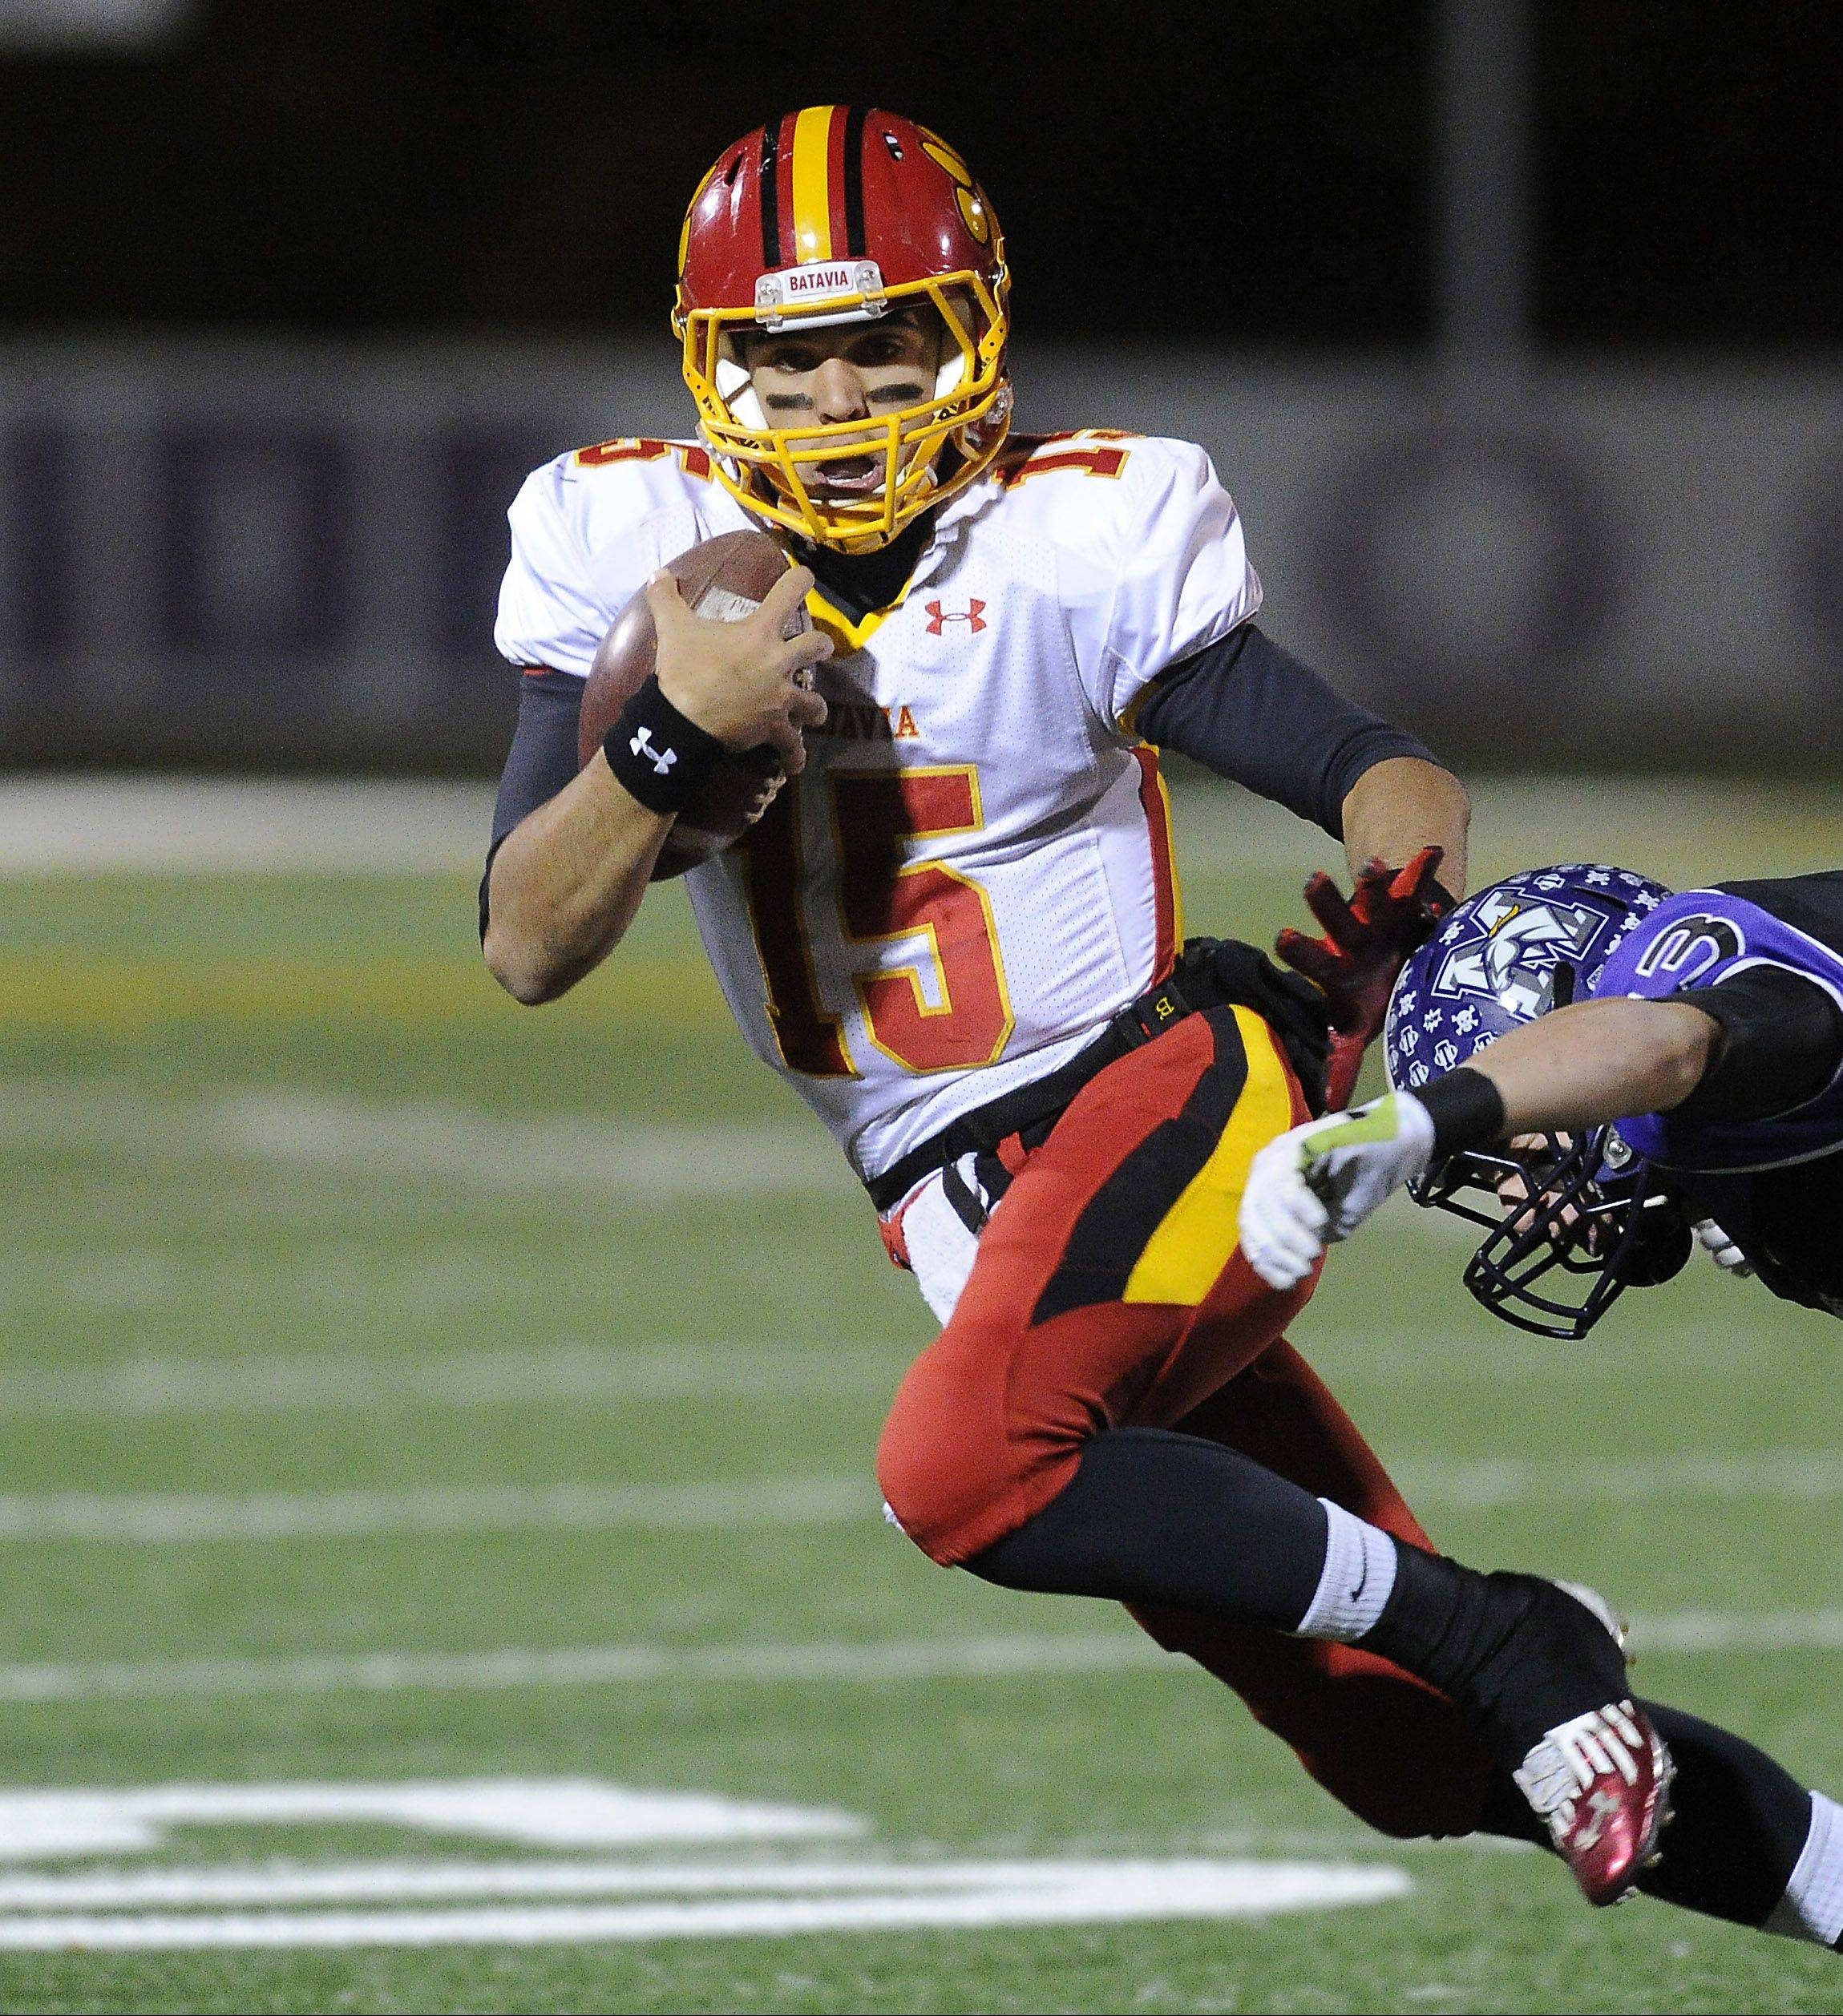 Batavia quarterback Micah Coffey has been a strong leader throughout the season for the Bulldogs.